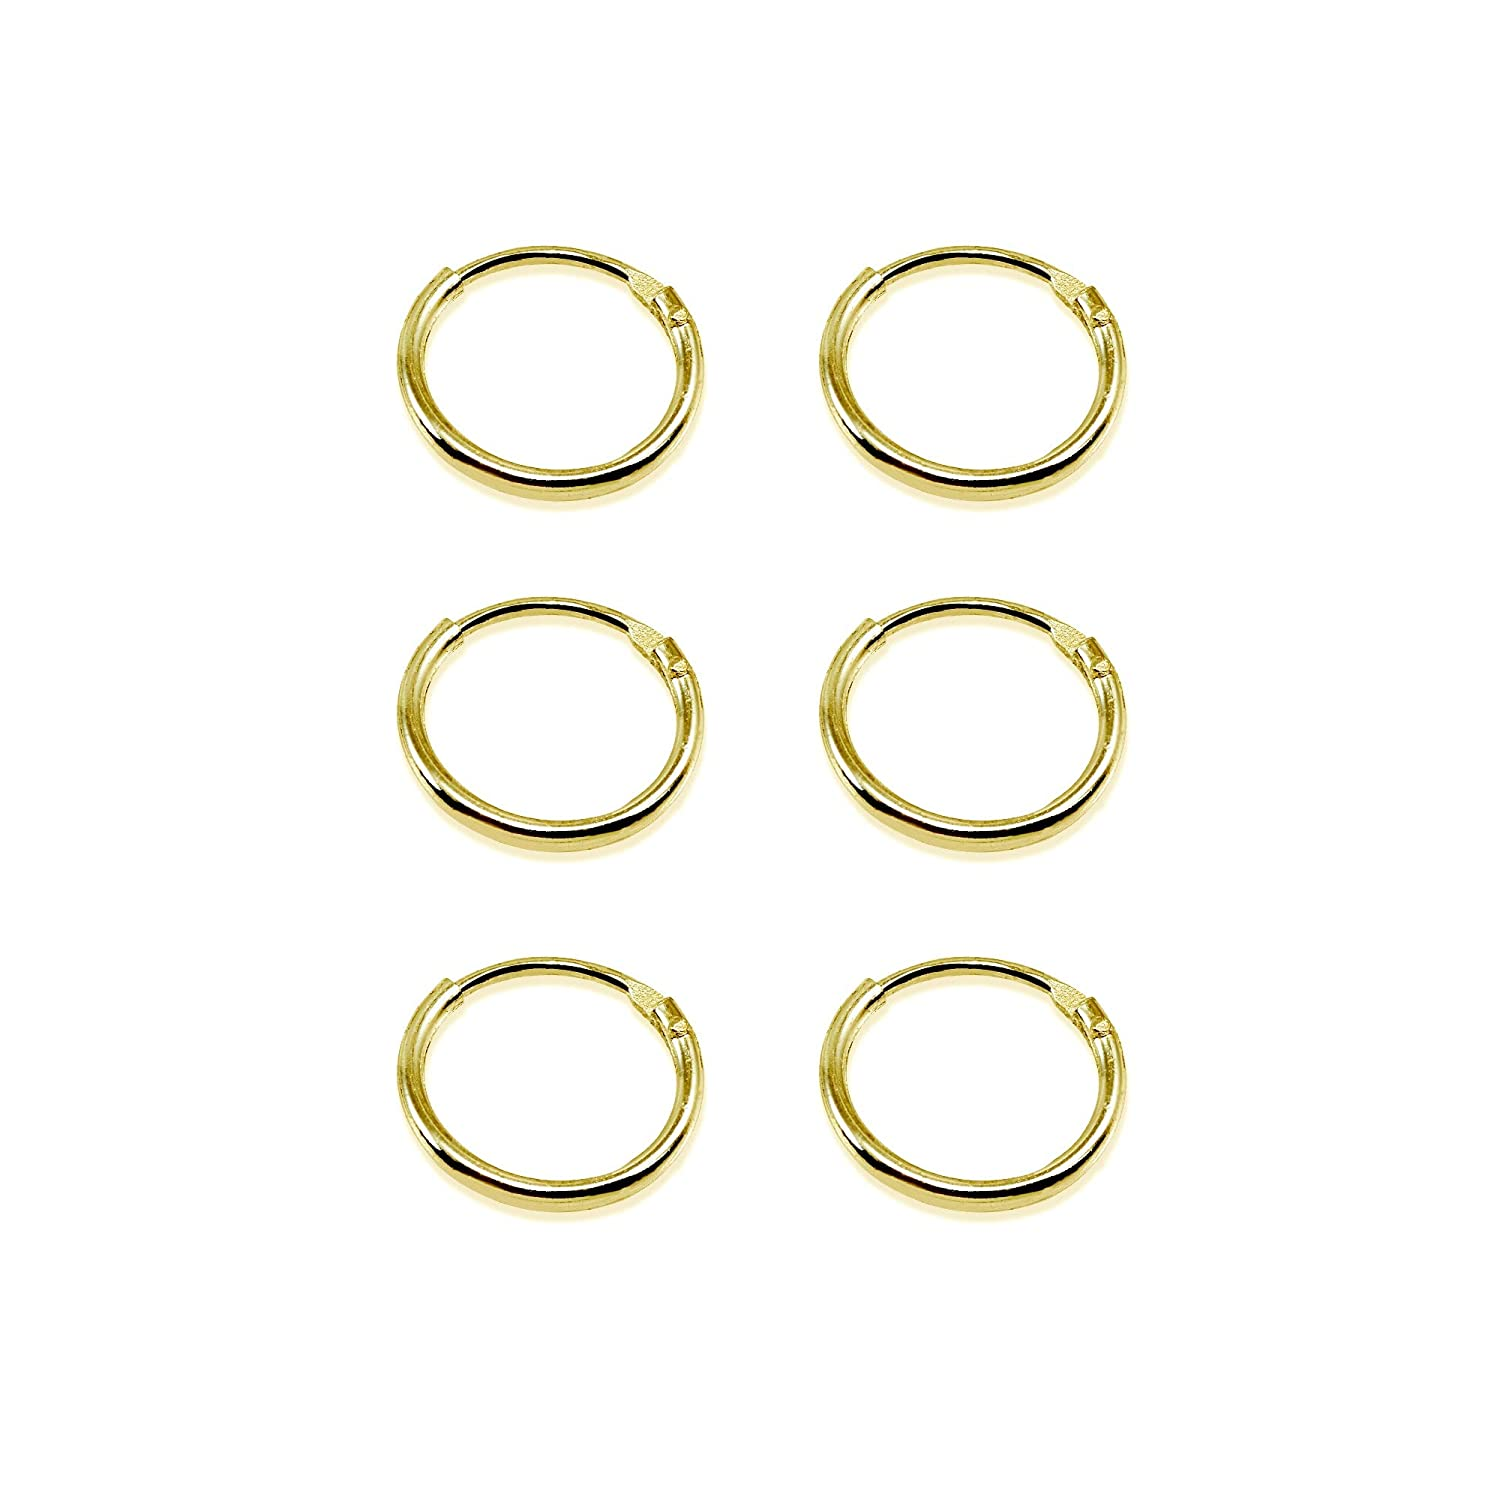 Yellow Gold Flashed Sterling Silver Small Endless 10mm Round Unisex Hoop Earrings Set of 3 Pairs